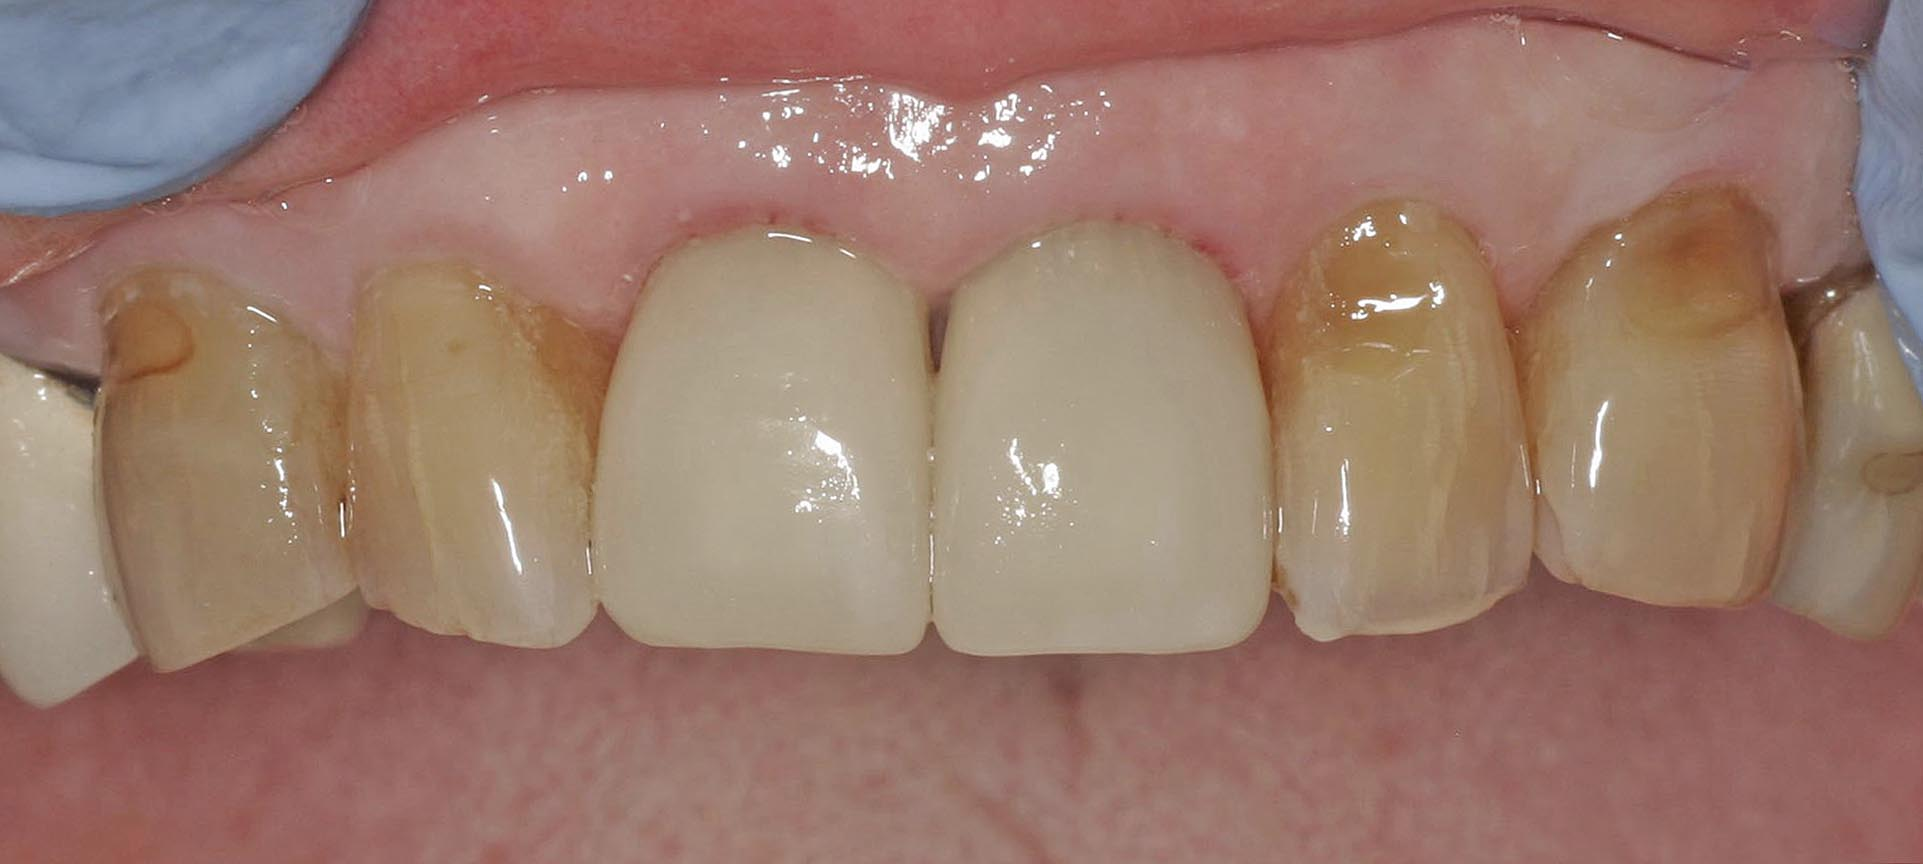 Close up of an actual patient mouth after the dental implant procedure has been completed